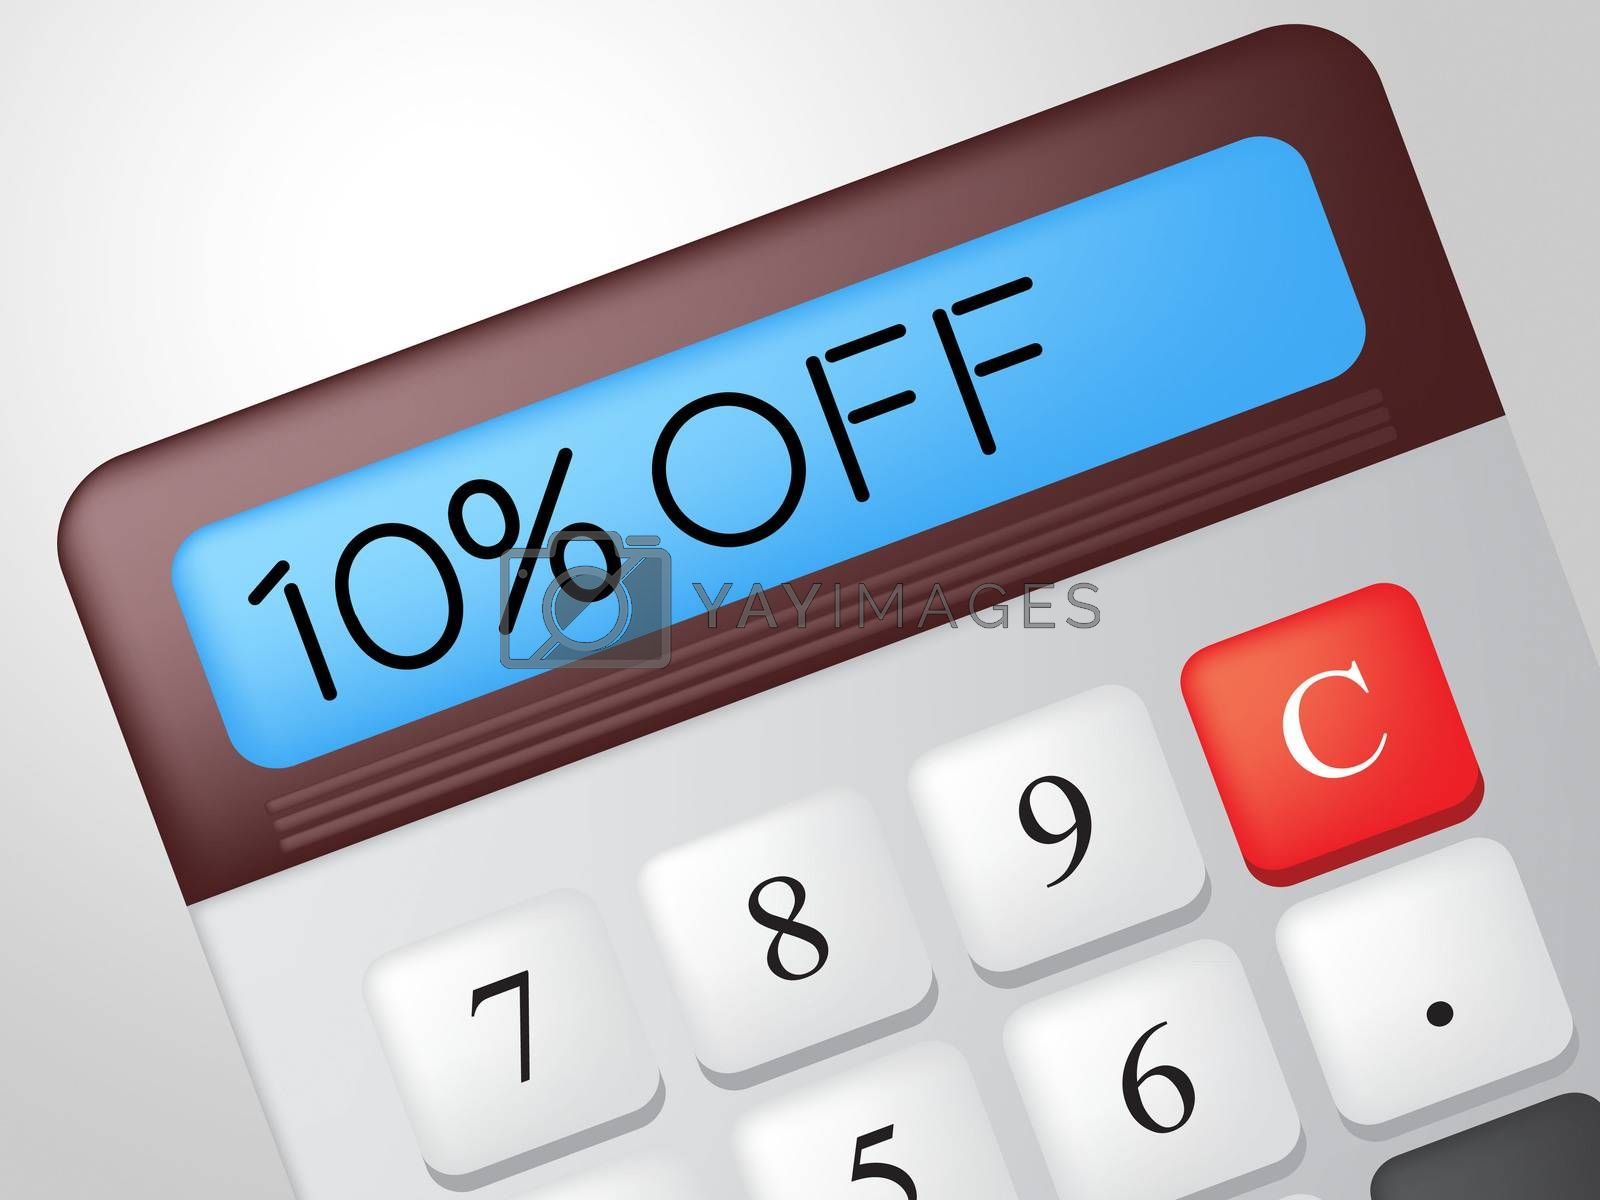 Ten Percent Off Indicates Calculate Offer And Sale by stuartmiles